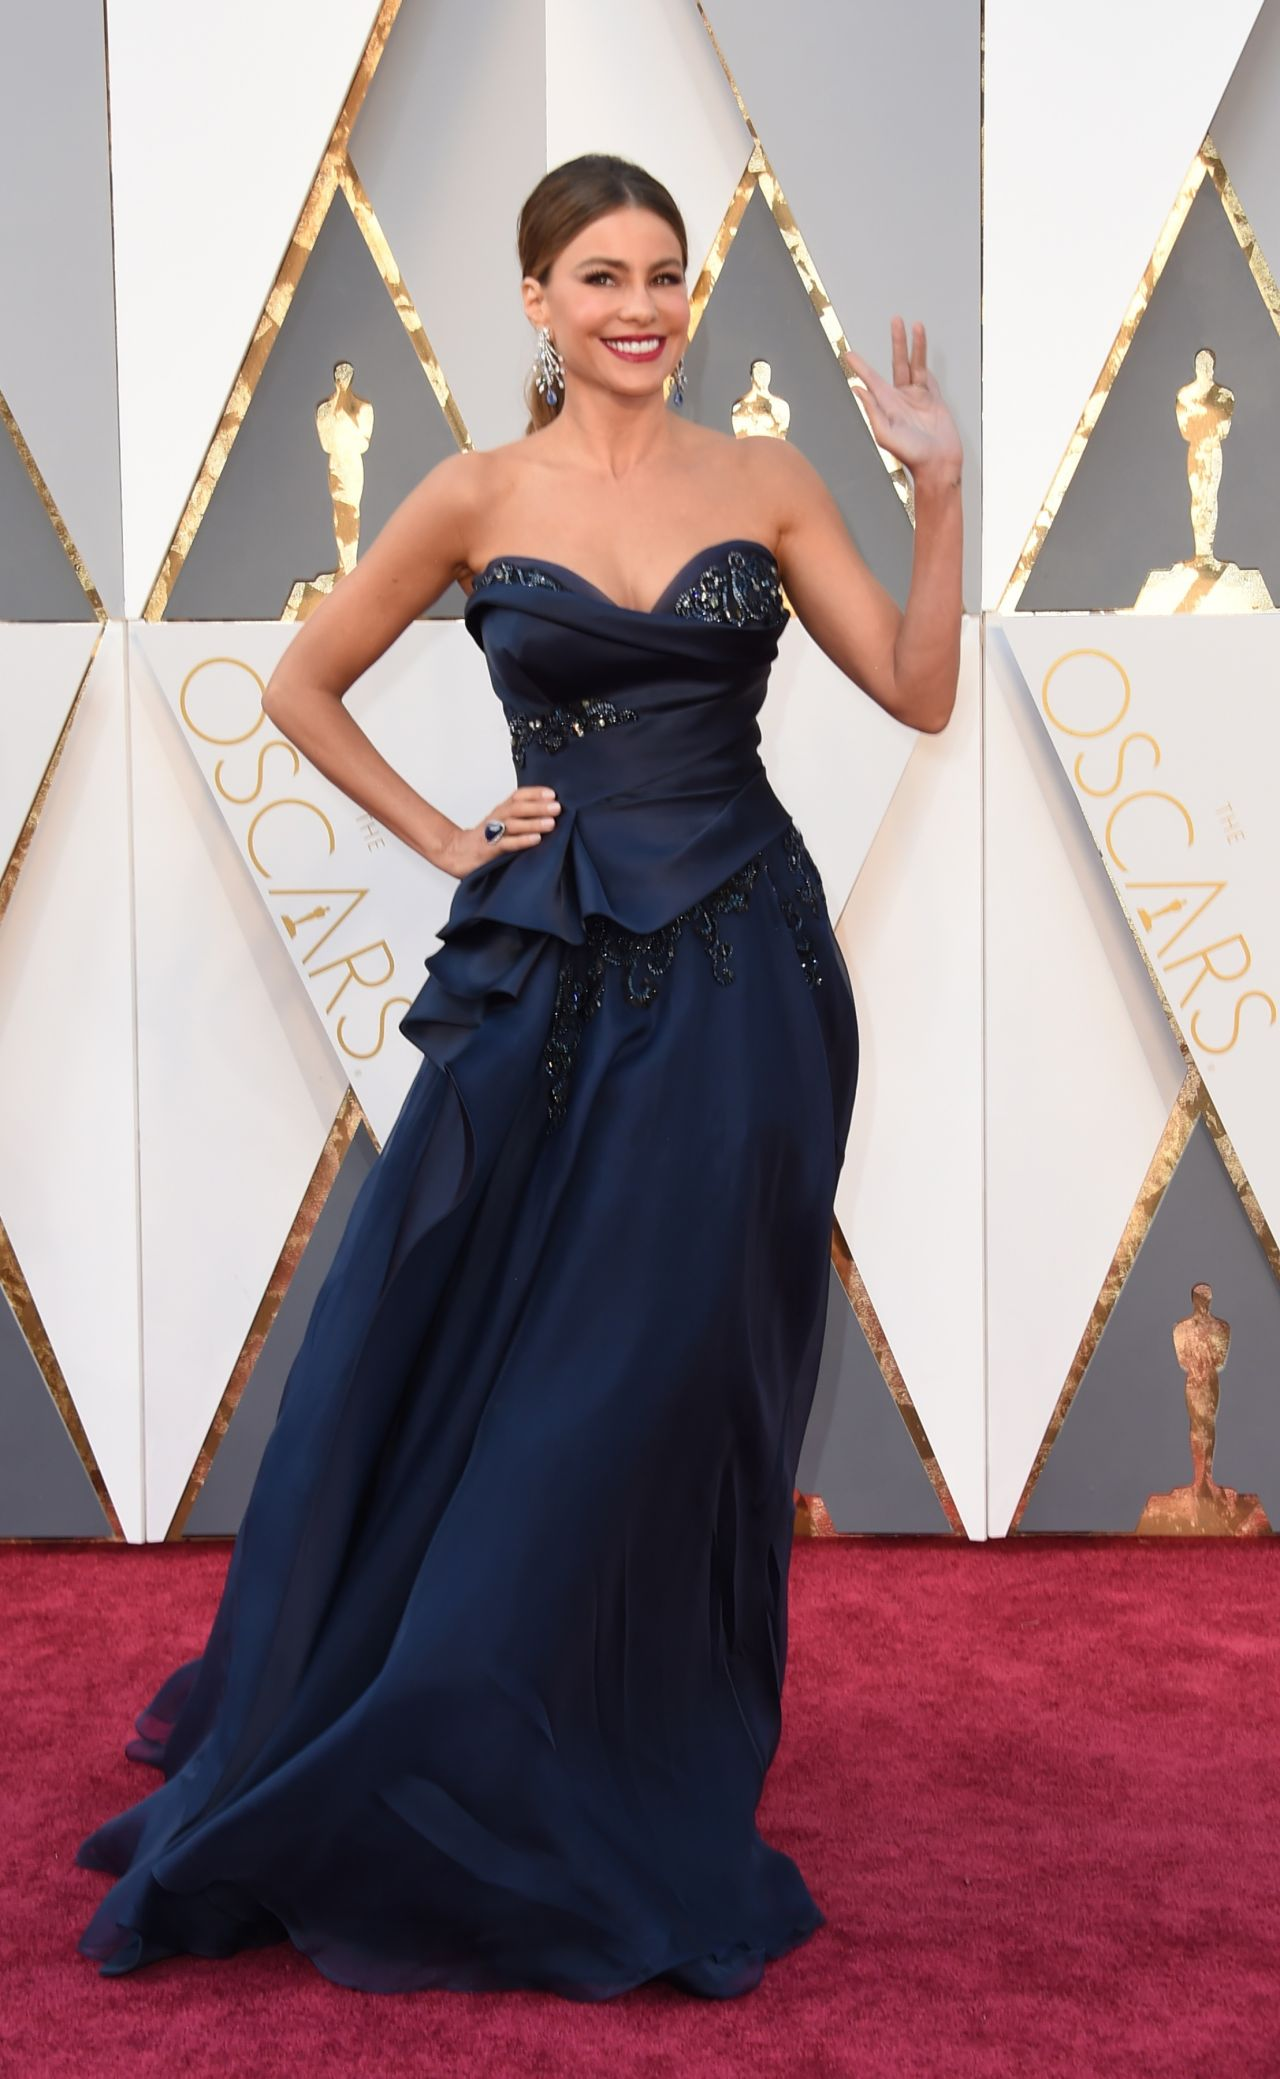 sofía-vergara-oscars-2016-in-hollywood-part-ii-2